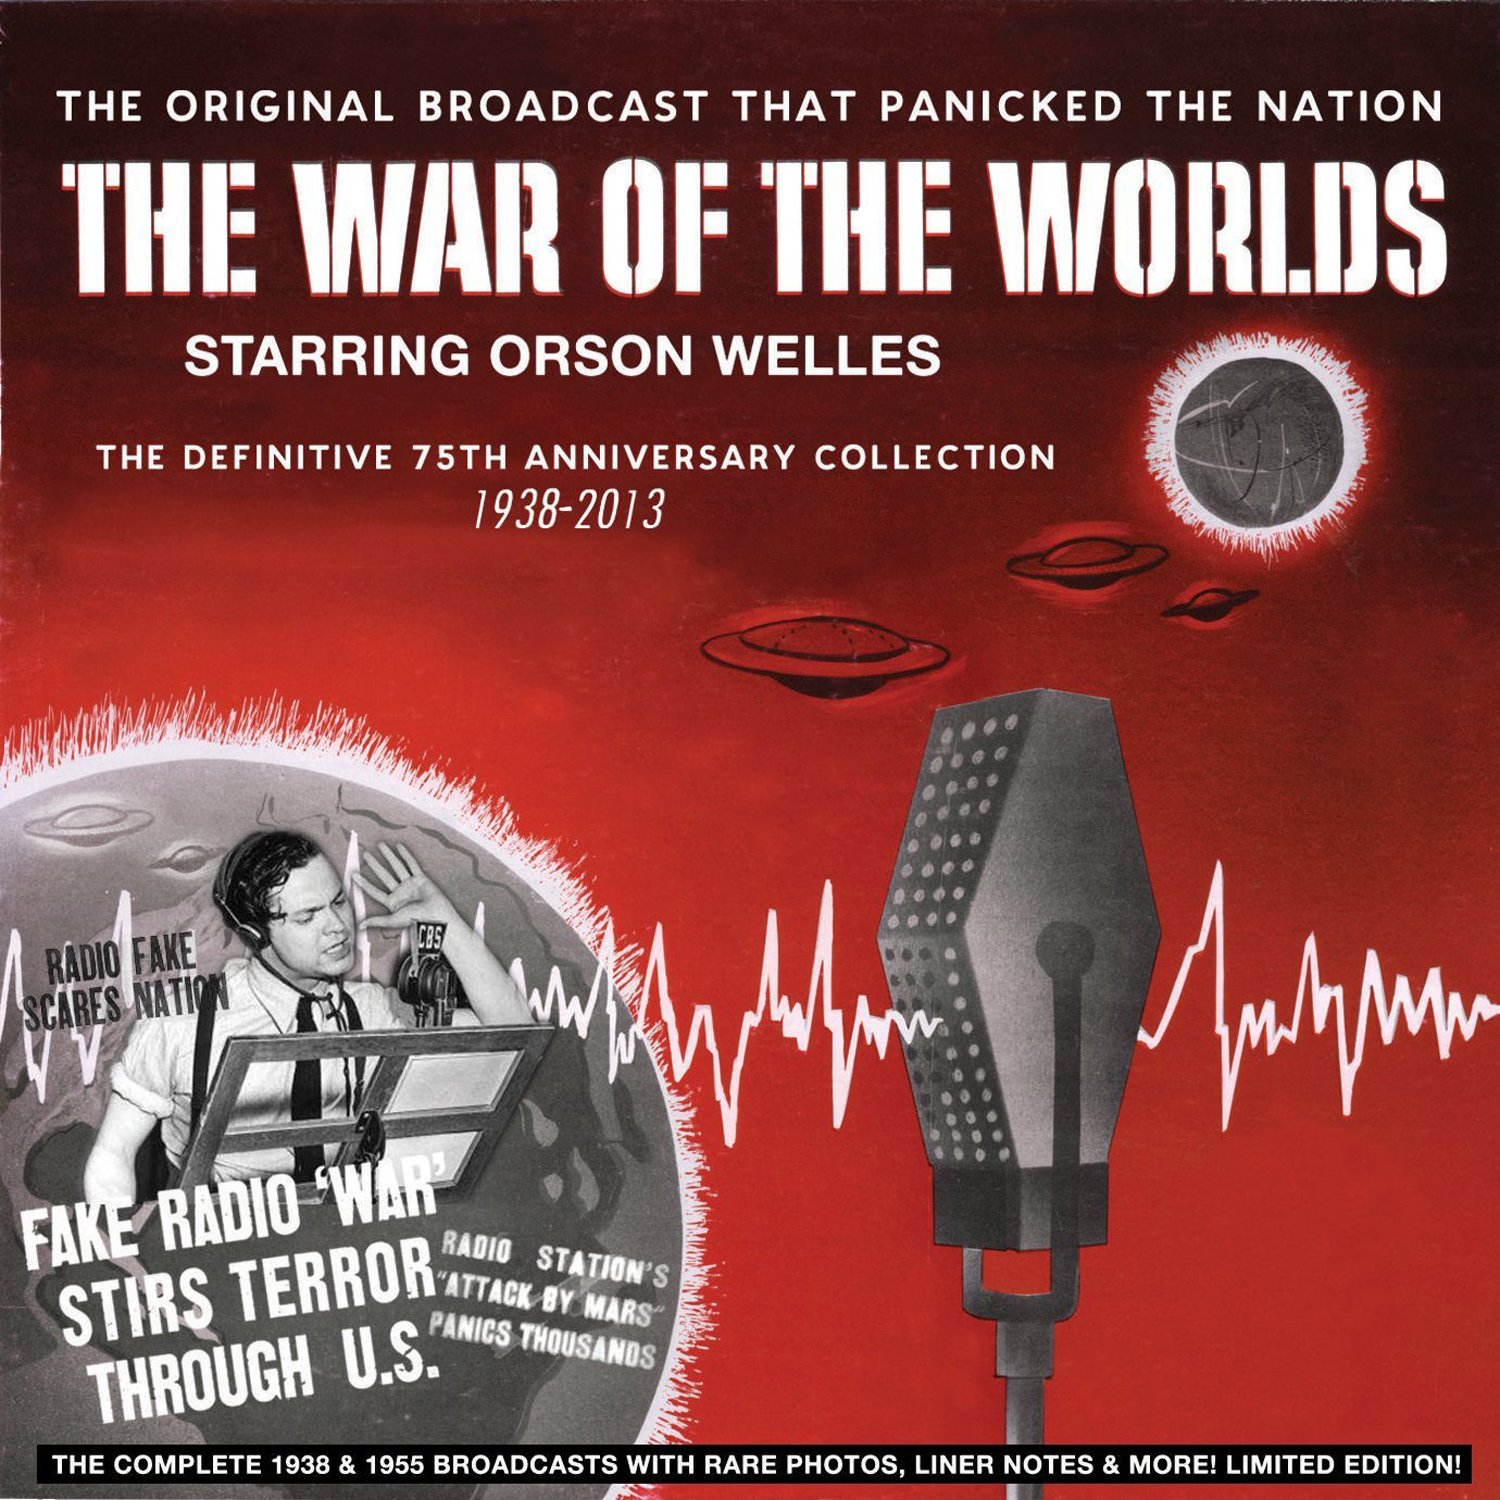 The War Of The Worlds - The Definitive 75th Anniversary Collection 1938-2013 by Cleopatra